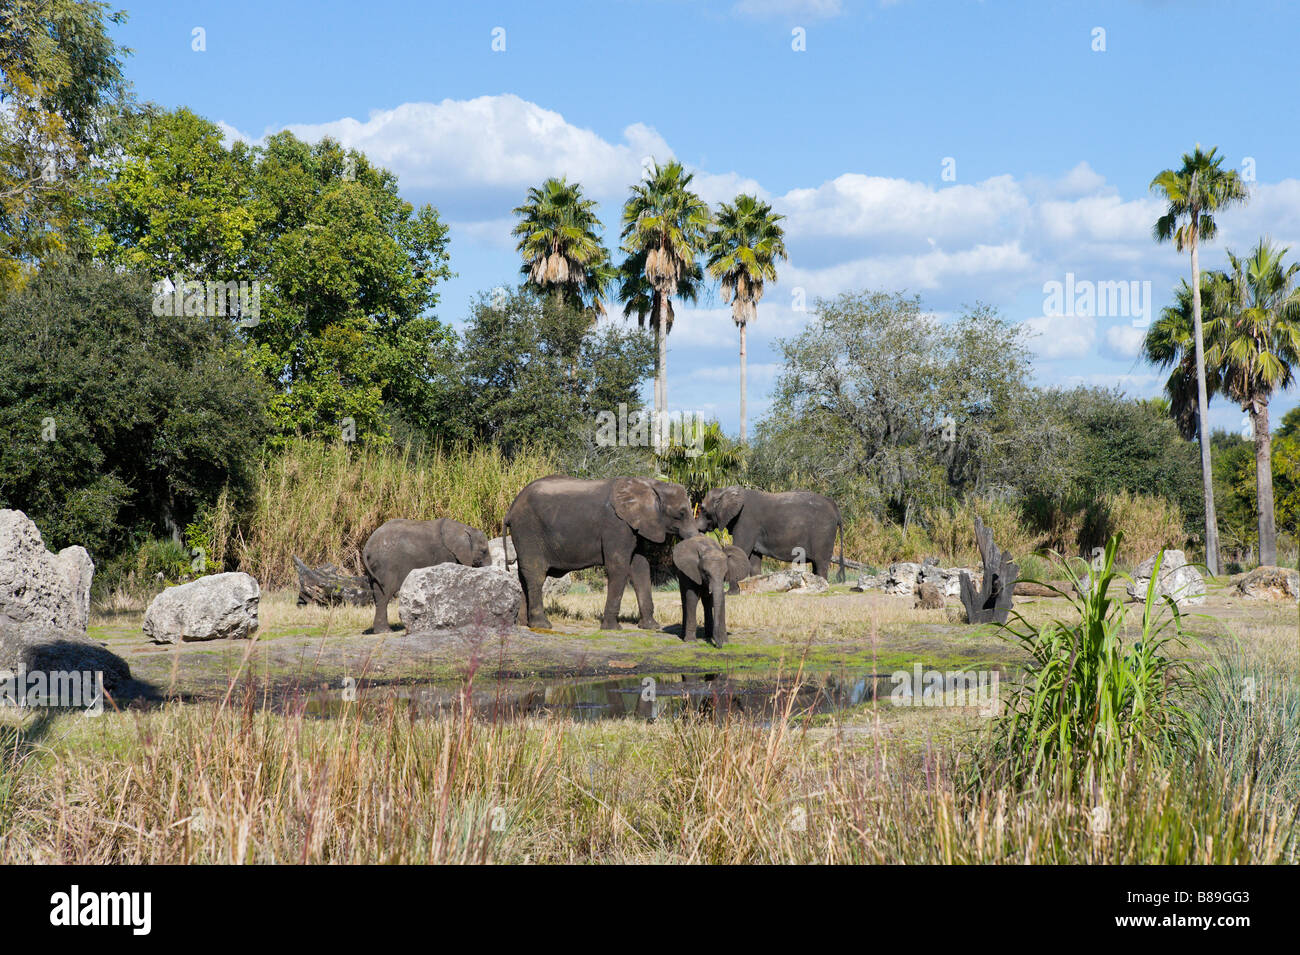 Elephants on the Kilimanjaro Safari, Animal Kingdom, Walt Disney World Resort, Orlando, Florida - Stock Image